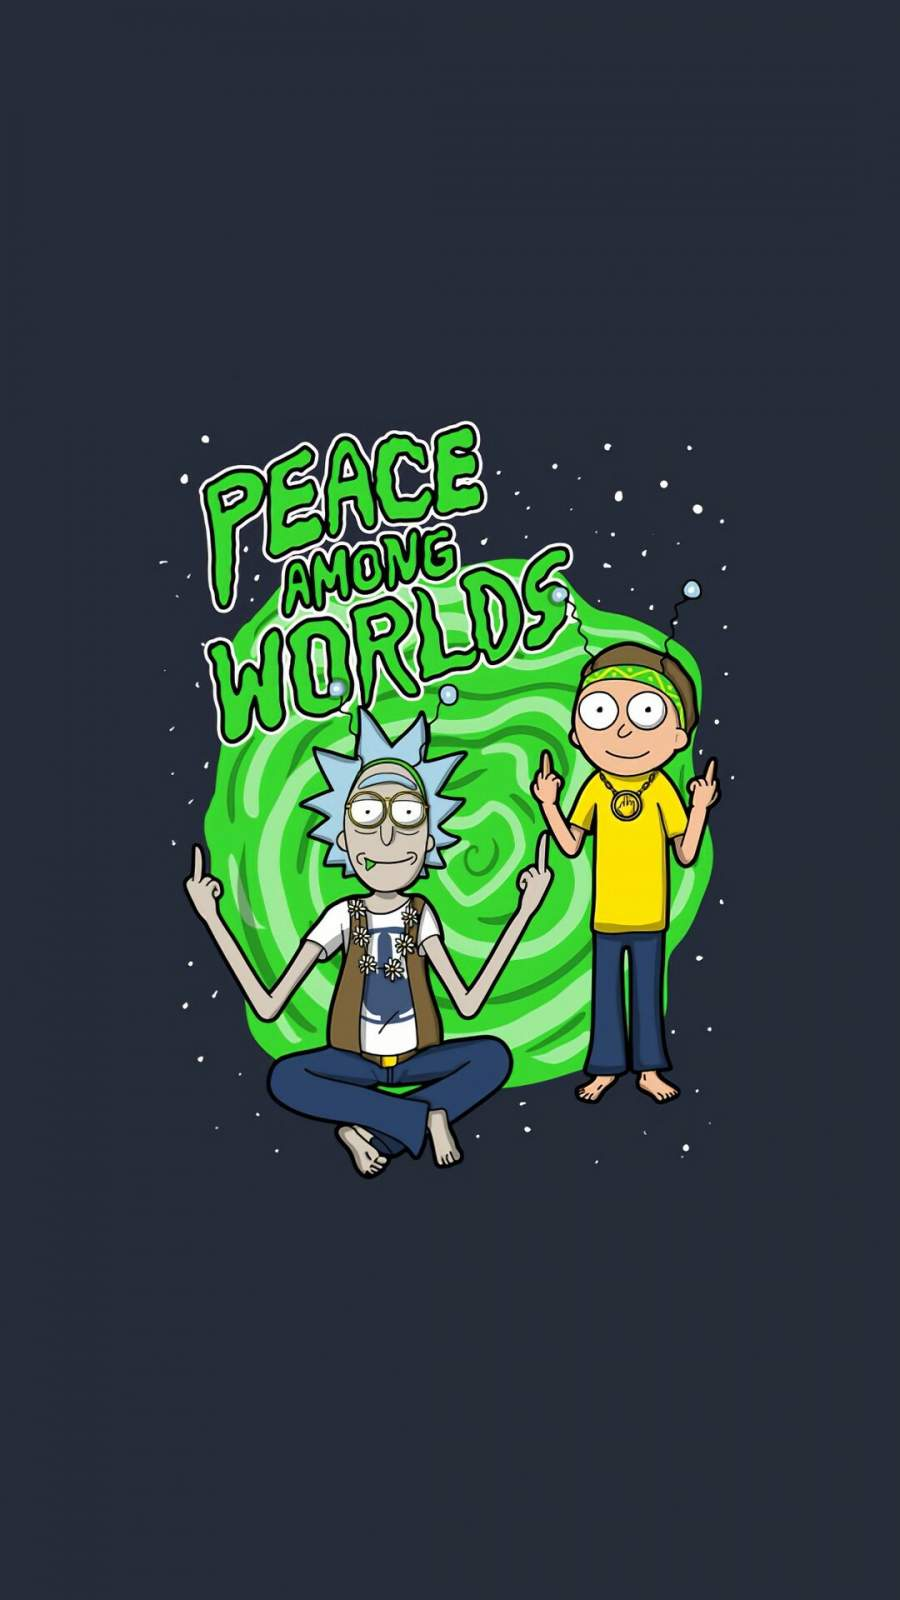 Rick and Morty Peace Among Words iPhone Wallpaper